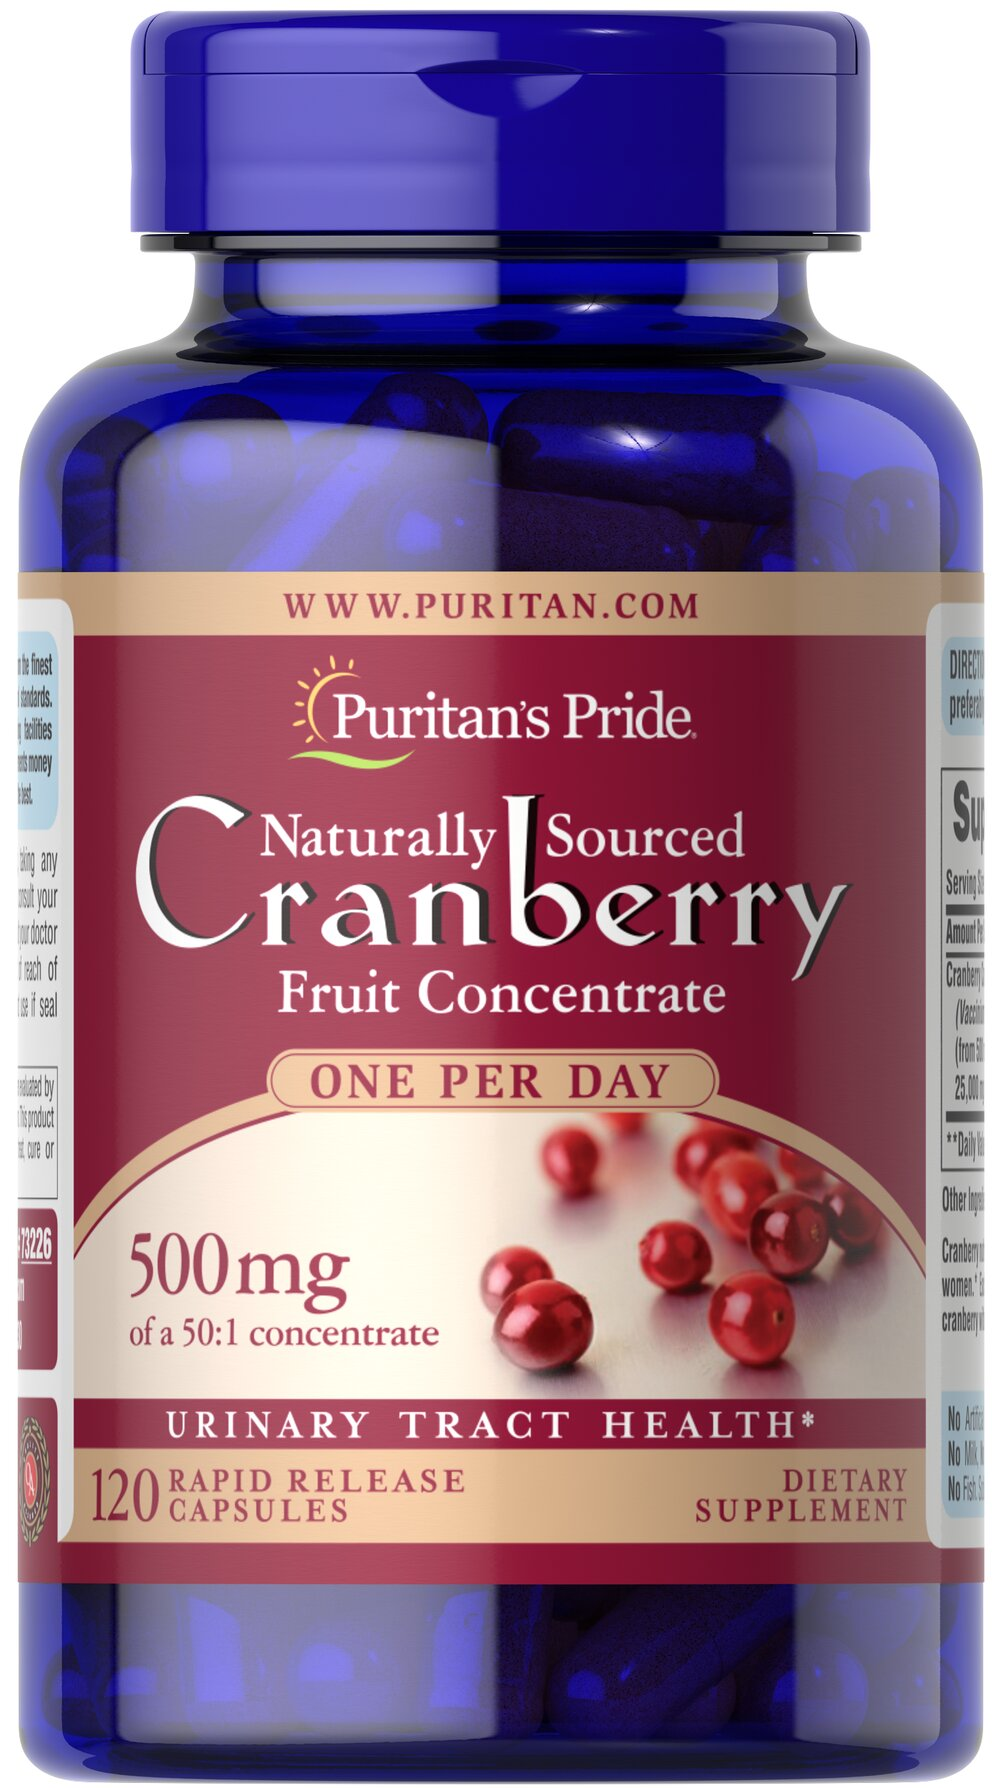 One A Day Cranberry <p>Equivalent to 25,000 mg of Cranberry Fruit per Capsule.</p><p>For years, health experts have recommended cranberry to help promote urinary tract health.**</p><p>Each dose provides the natural benefits of the whole cranberry without any preservatives, sugars, water, flavoring or color.</p> 120 Capsules 500 mg $28.99